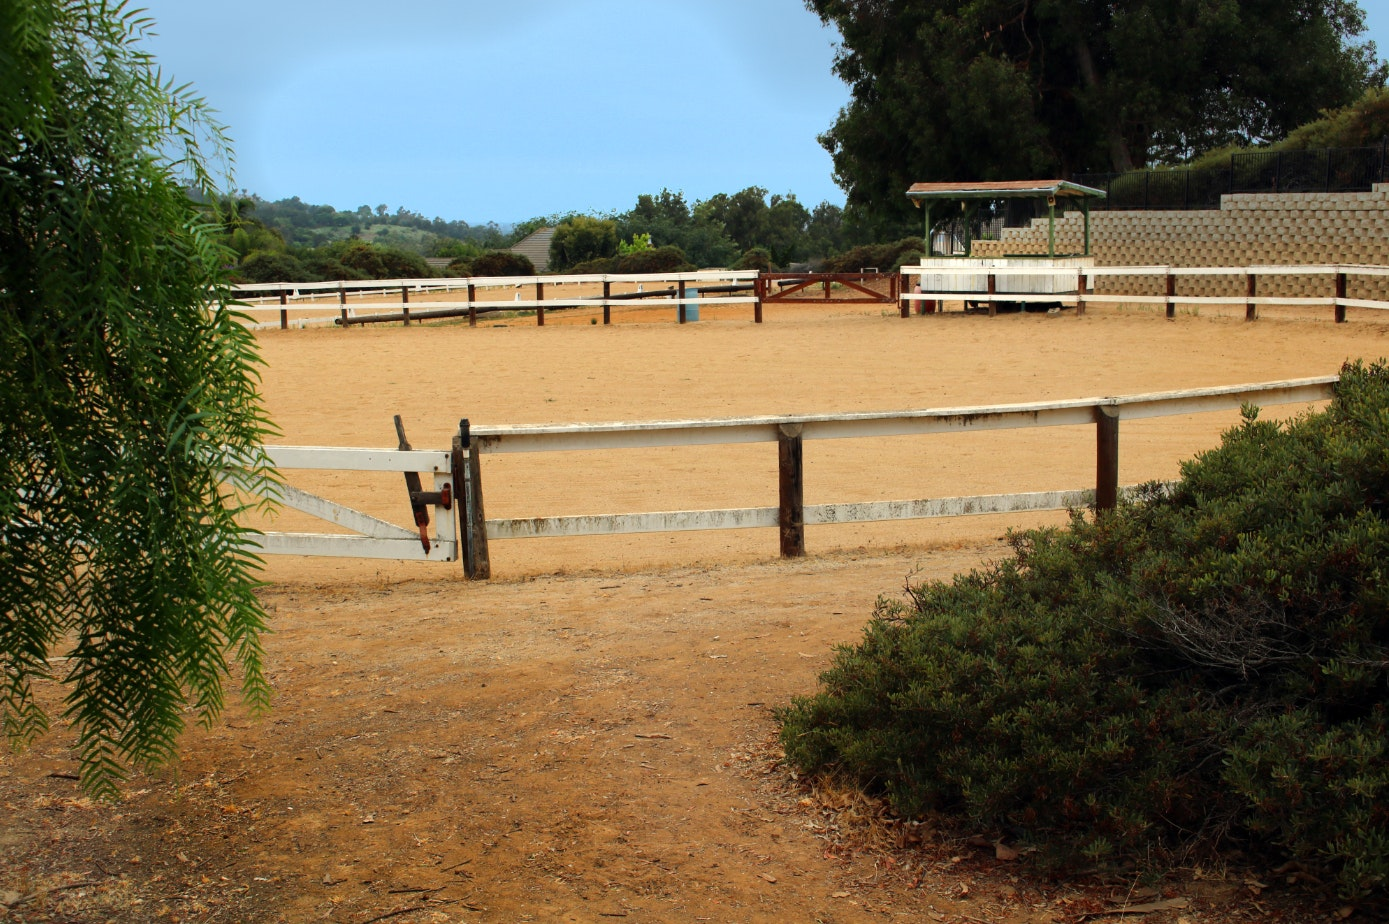 Las Posas Equestrian Center